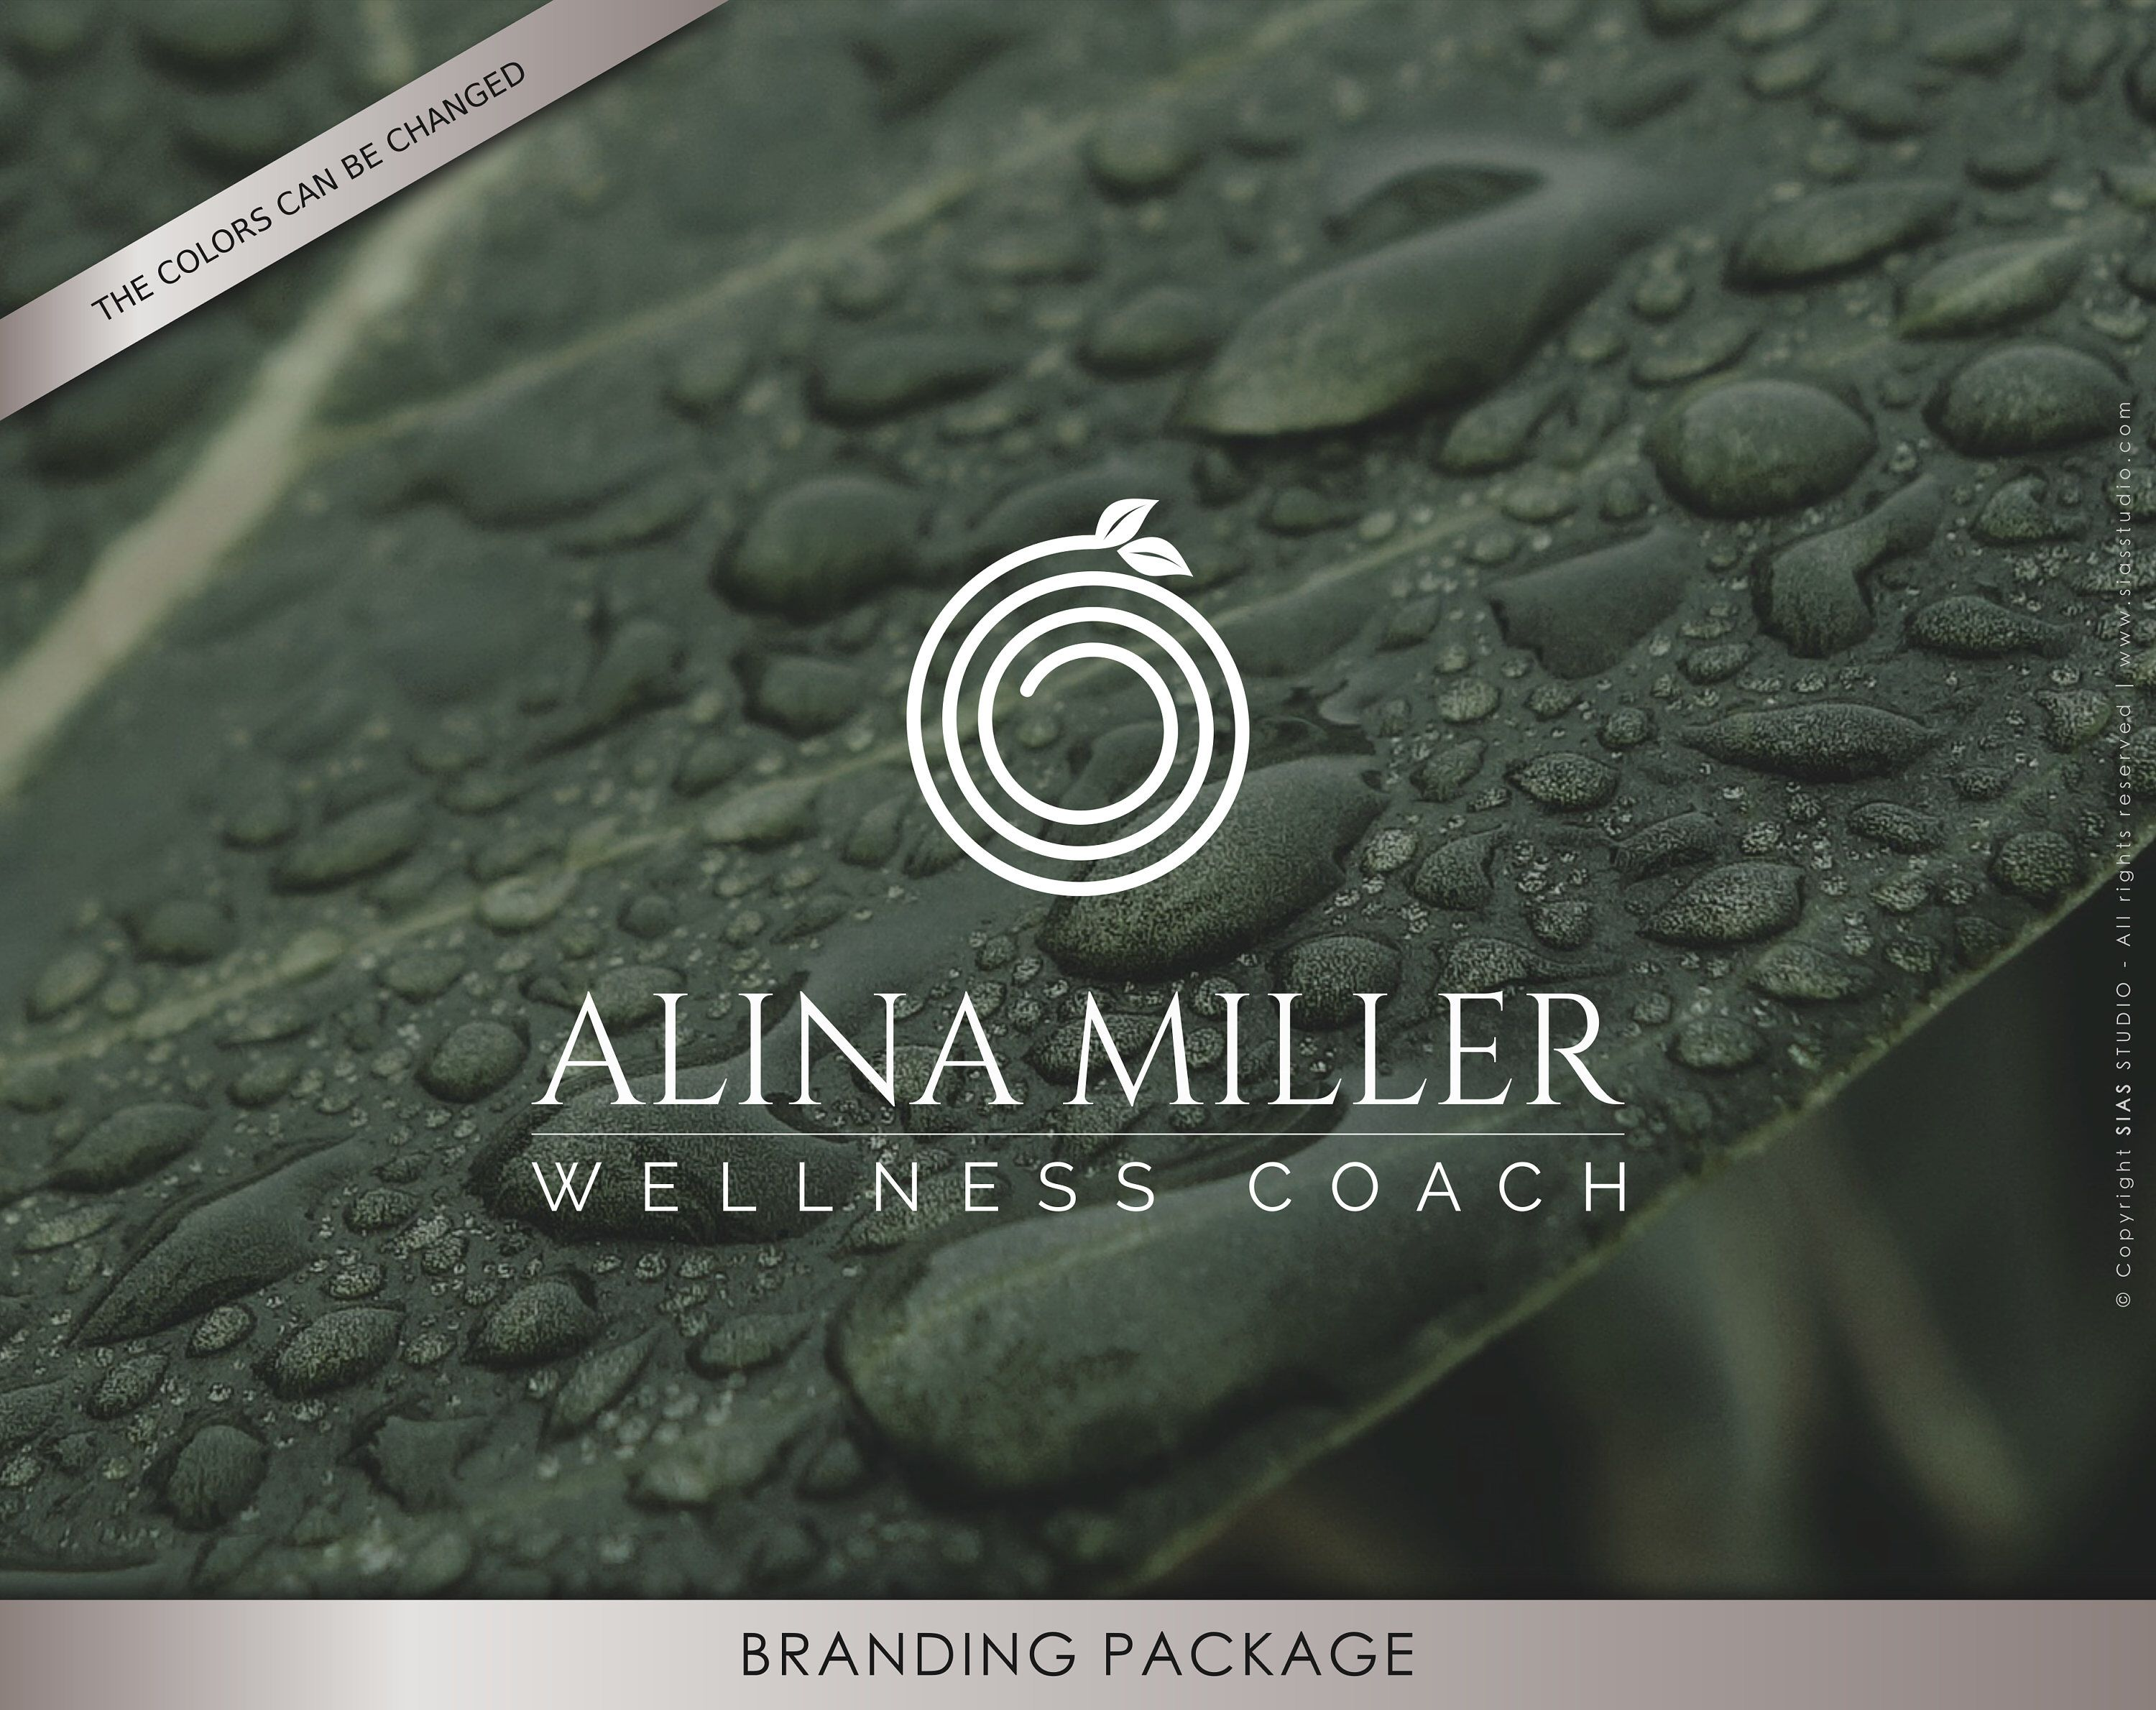 Premade branding package, Ultra stylish logo design, Professional brand identity, Customizable logo, Wellness logo design, Branding package